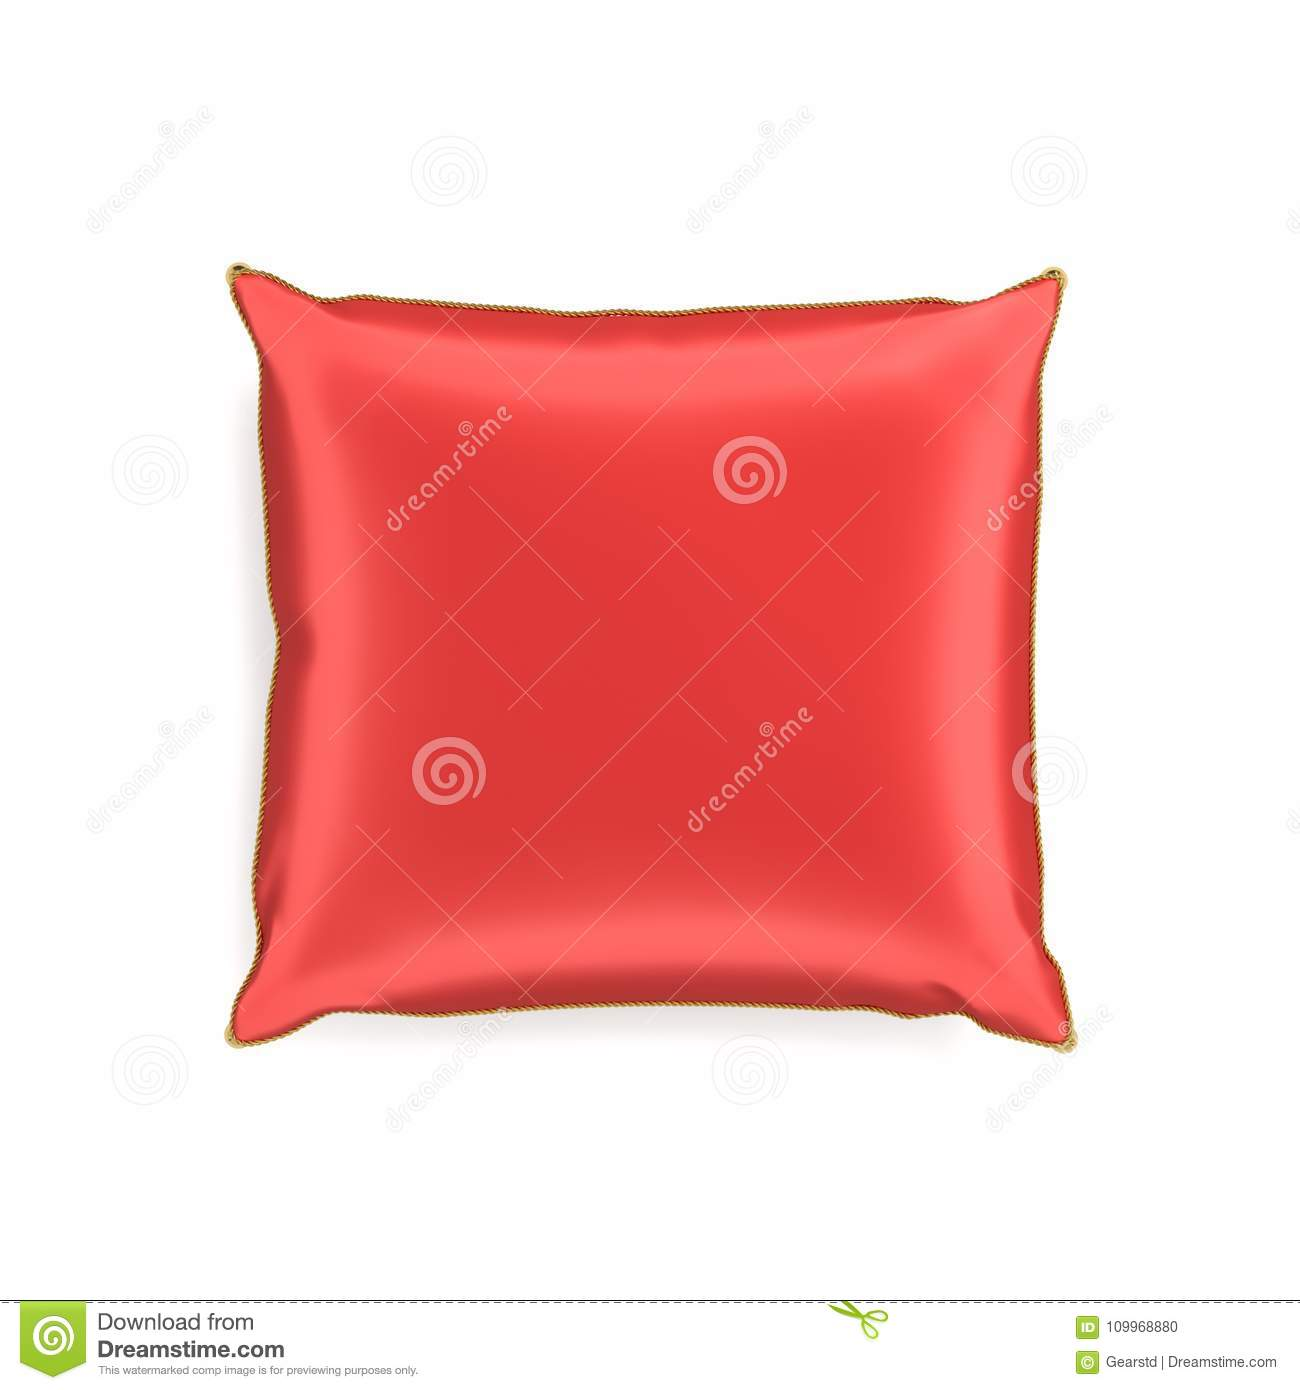 3d Rendering Of A Red Silk Decorative Pillow With Golden